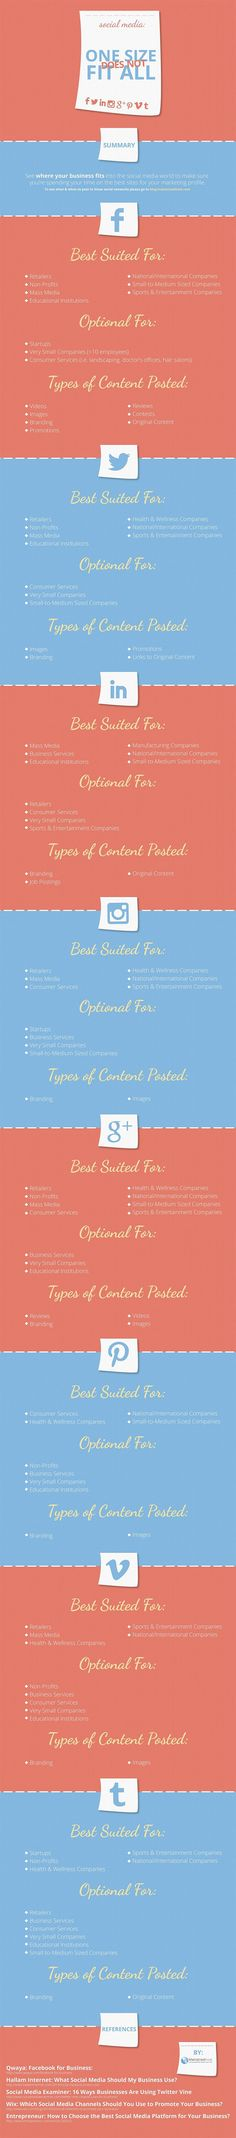 The Social Media Sites Your Type of Business is Suited to and What to Post #Infographic